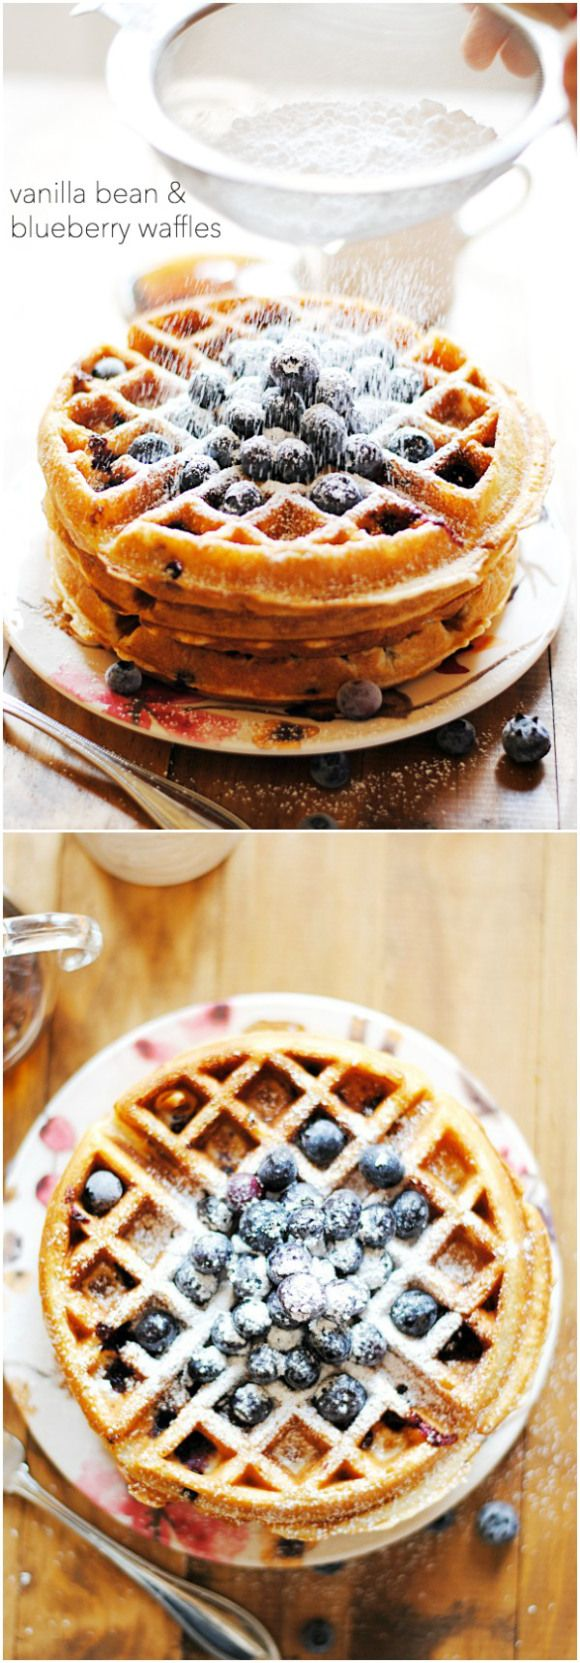 Blueberry Waffles | www.somethingswanky.com @somethingswanky